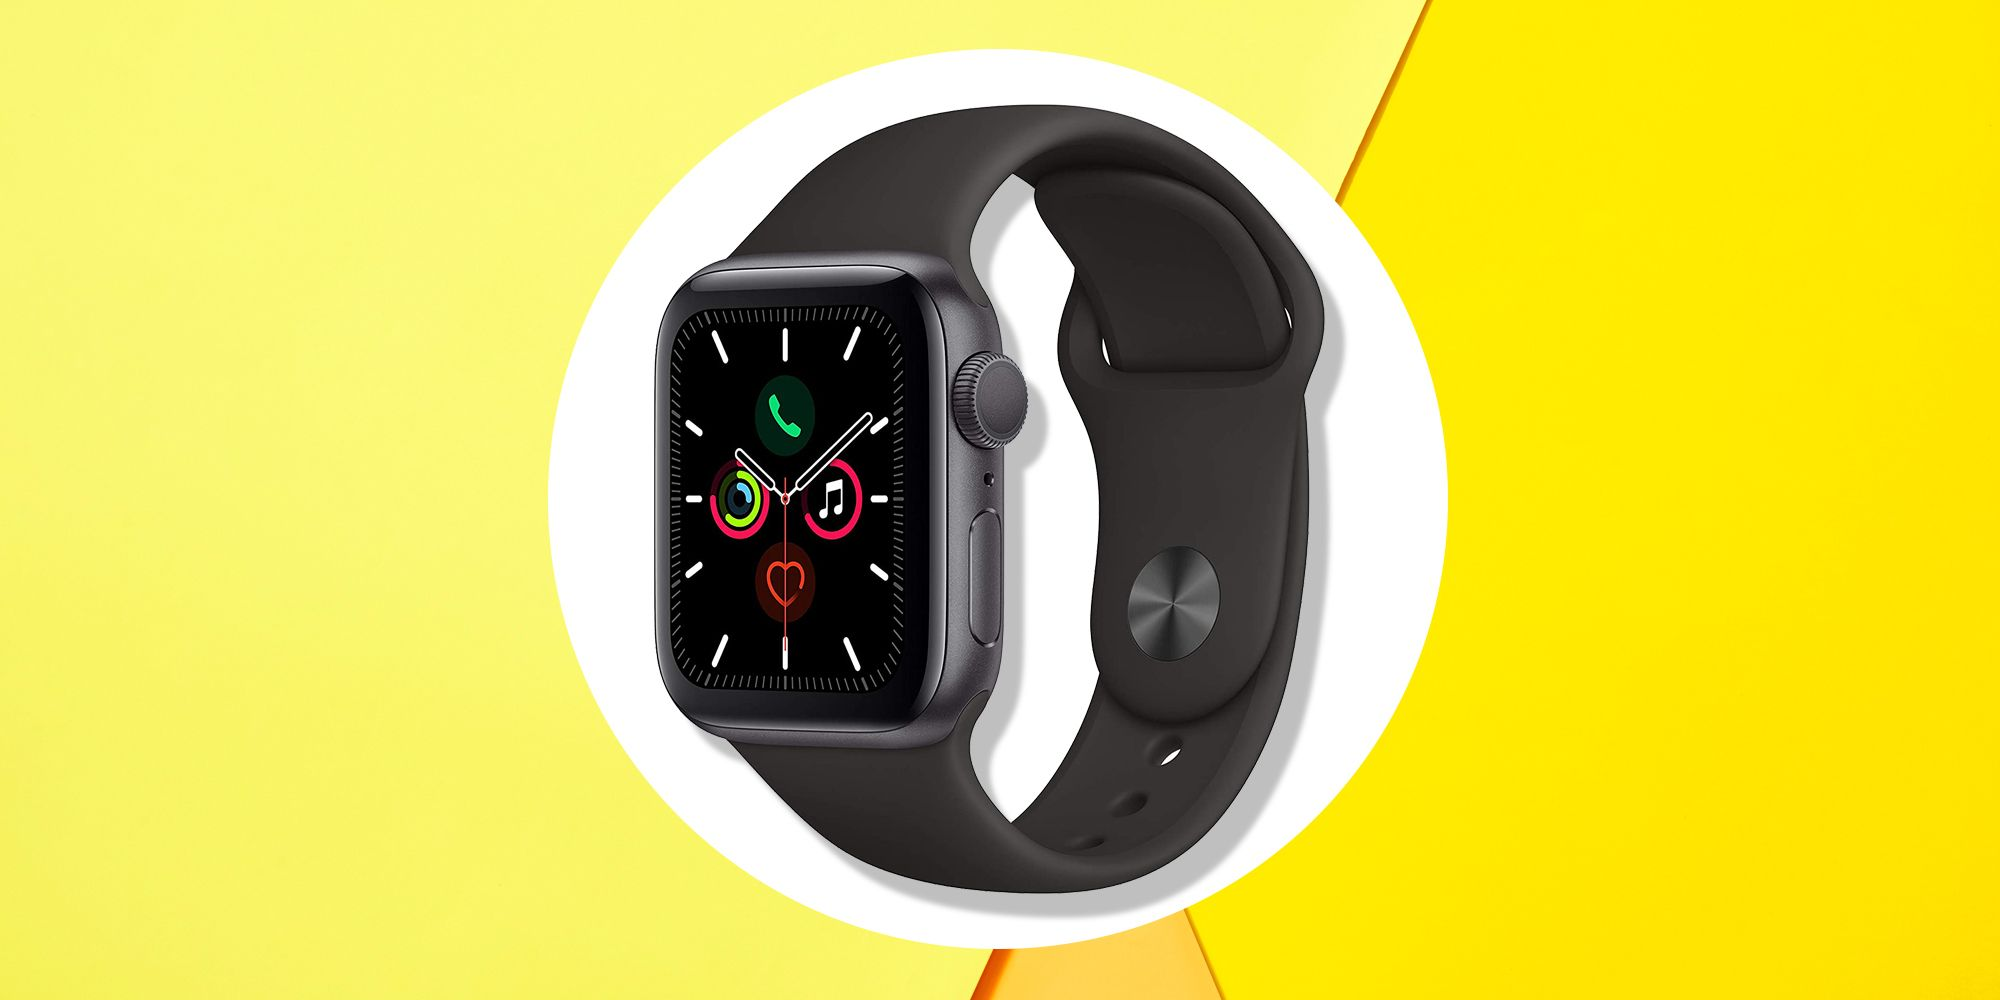 The Latest Apple Watch Series 5 Is On Sale On Amazon Today